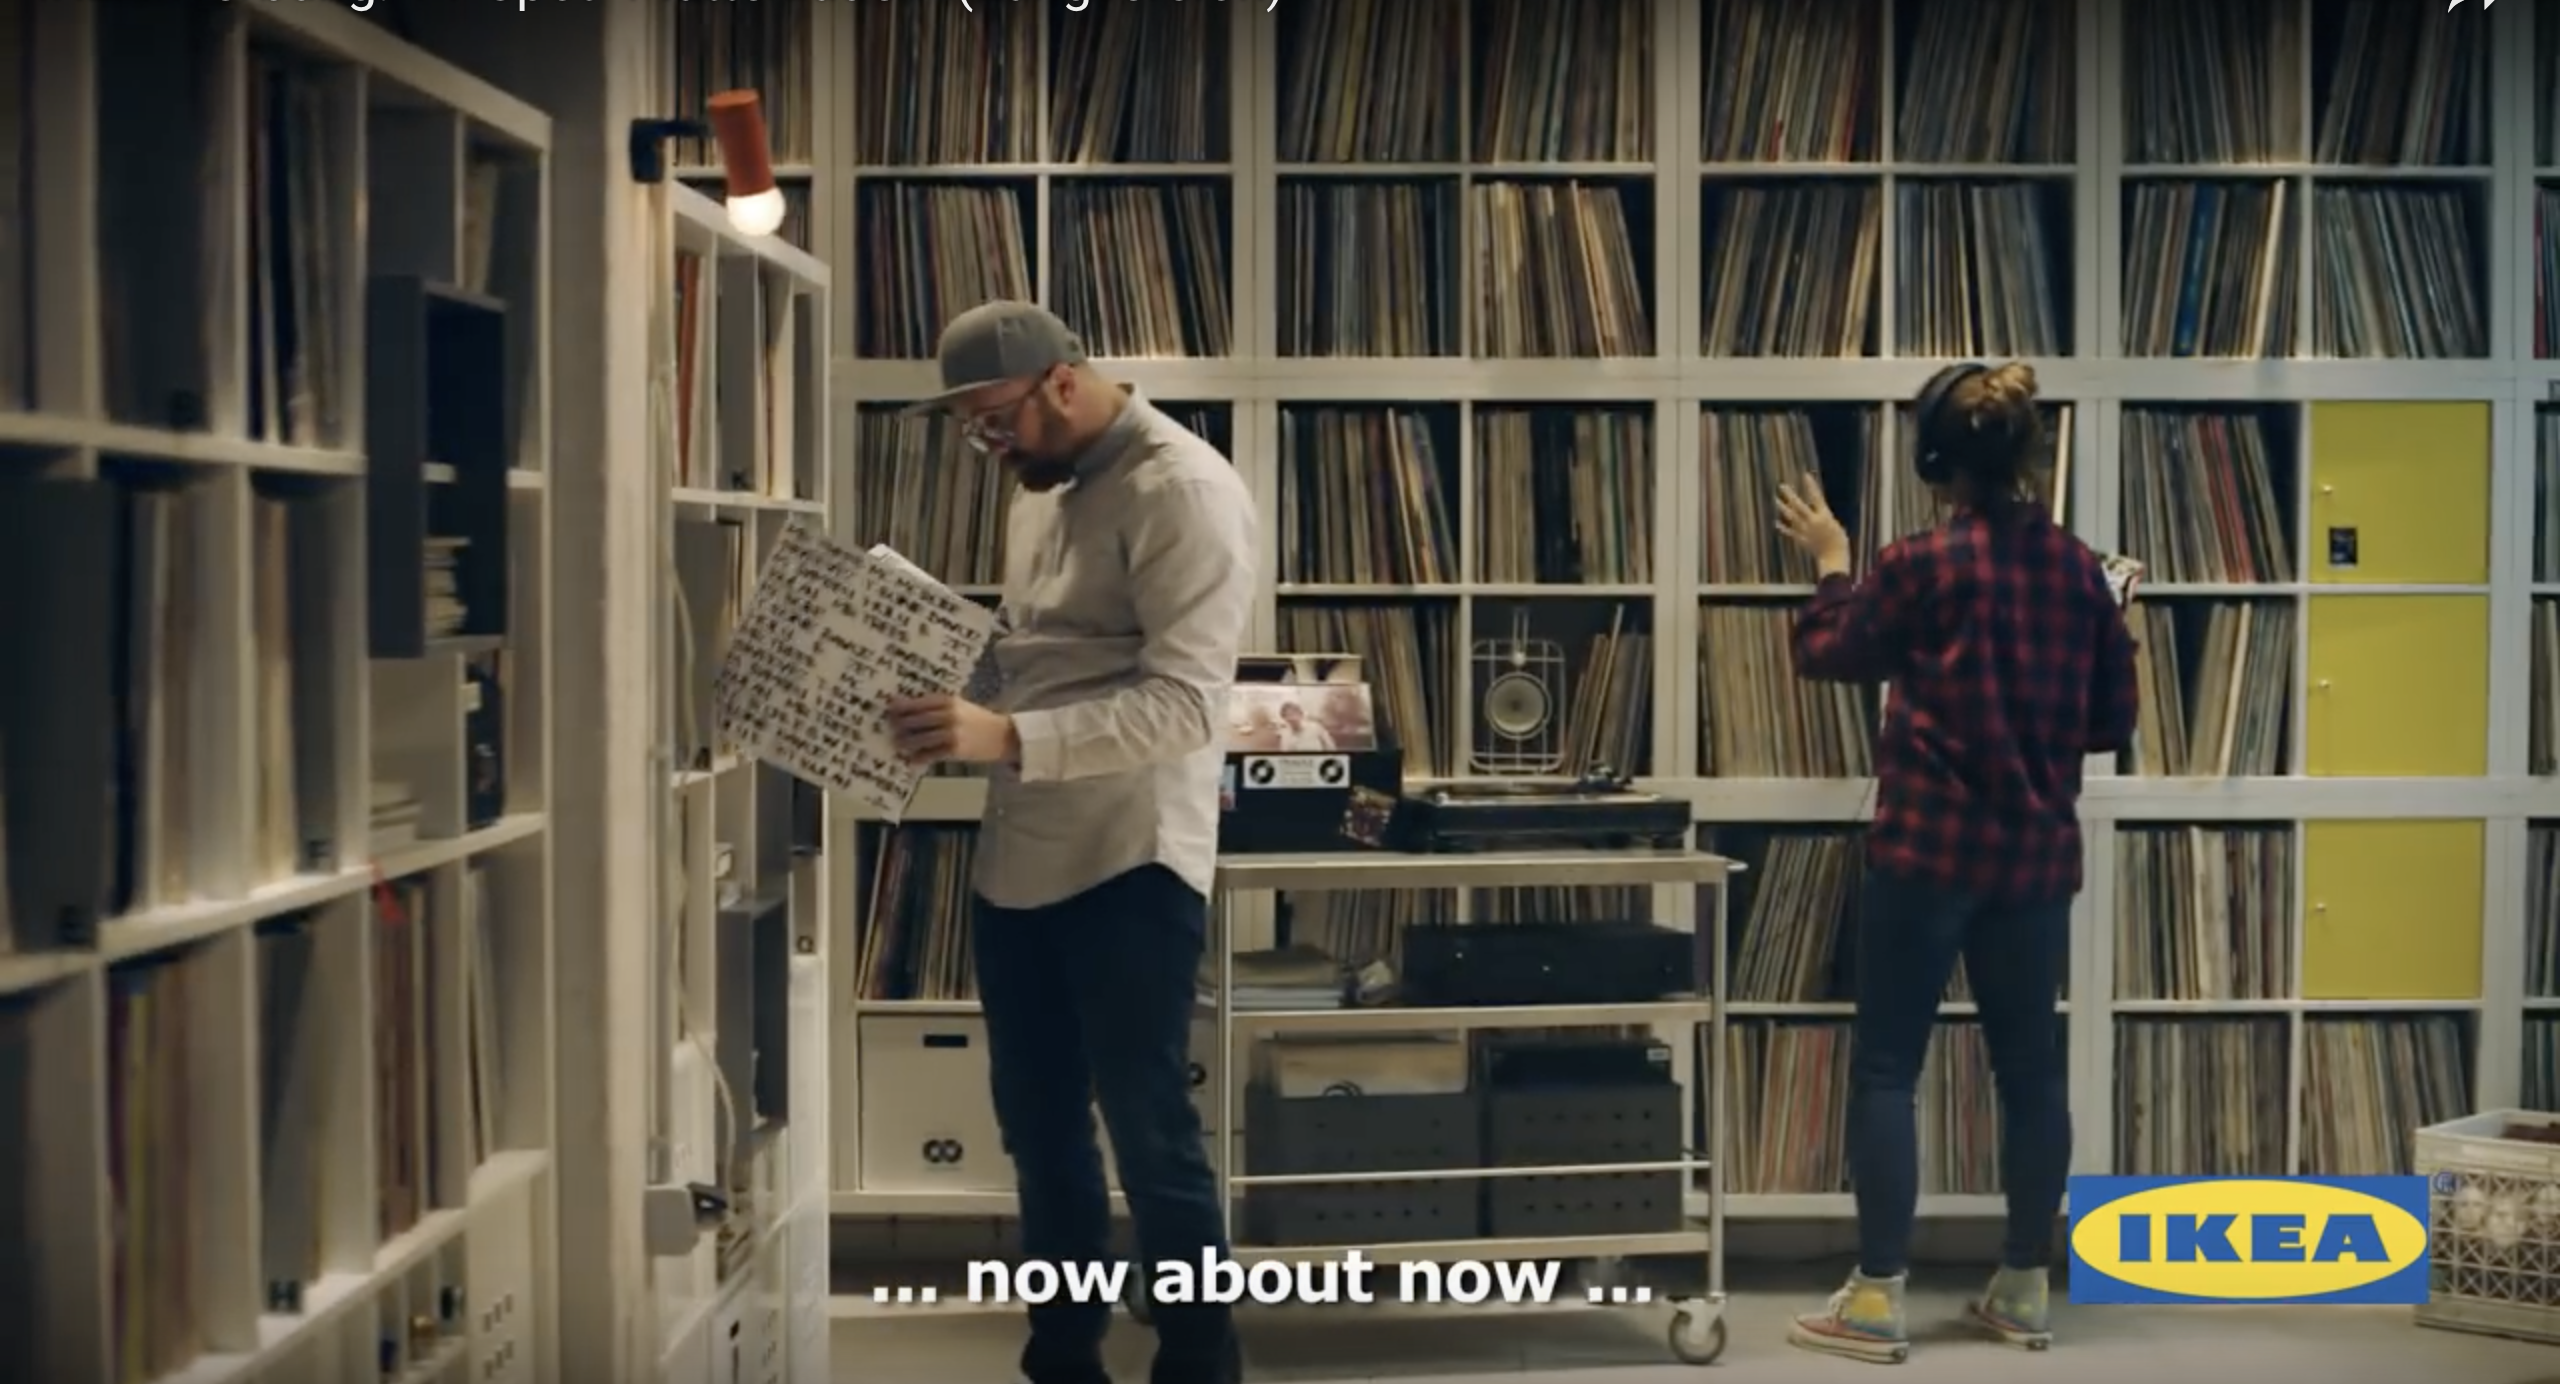 IKEA MUSIC SEARCH & NEGOTIATIONS